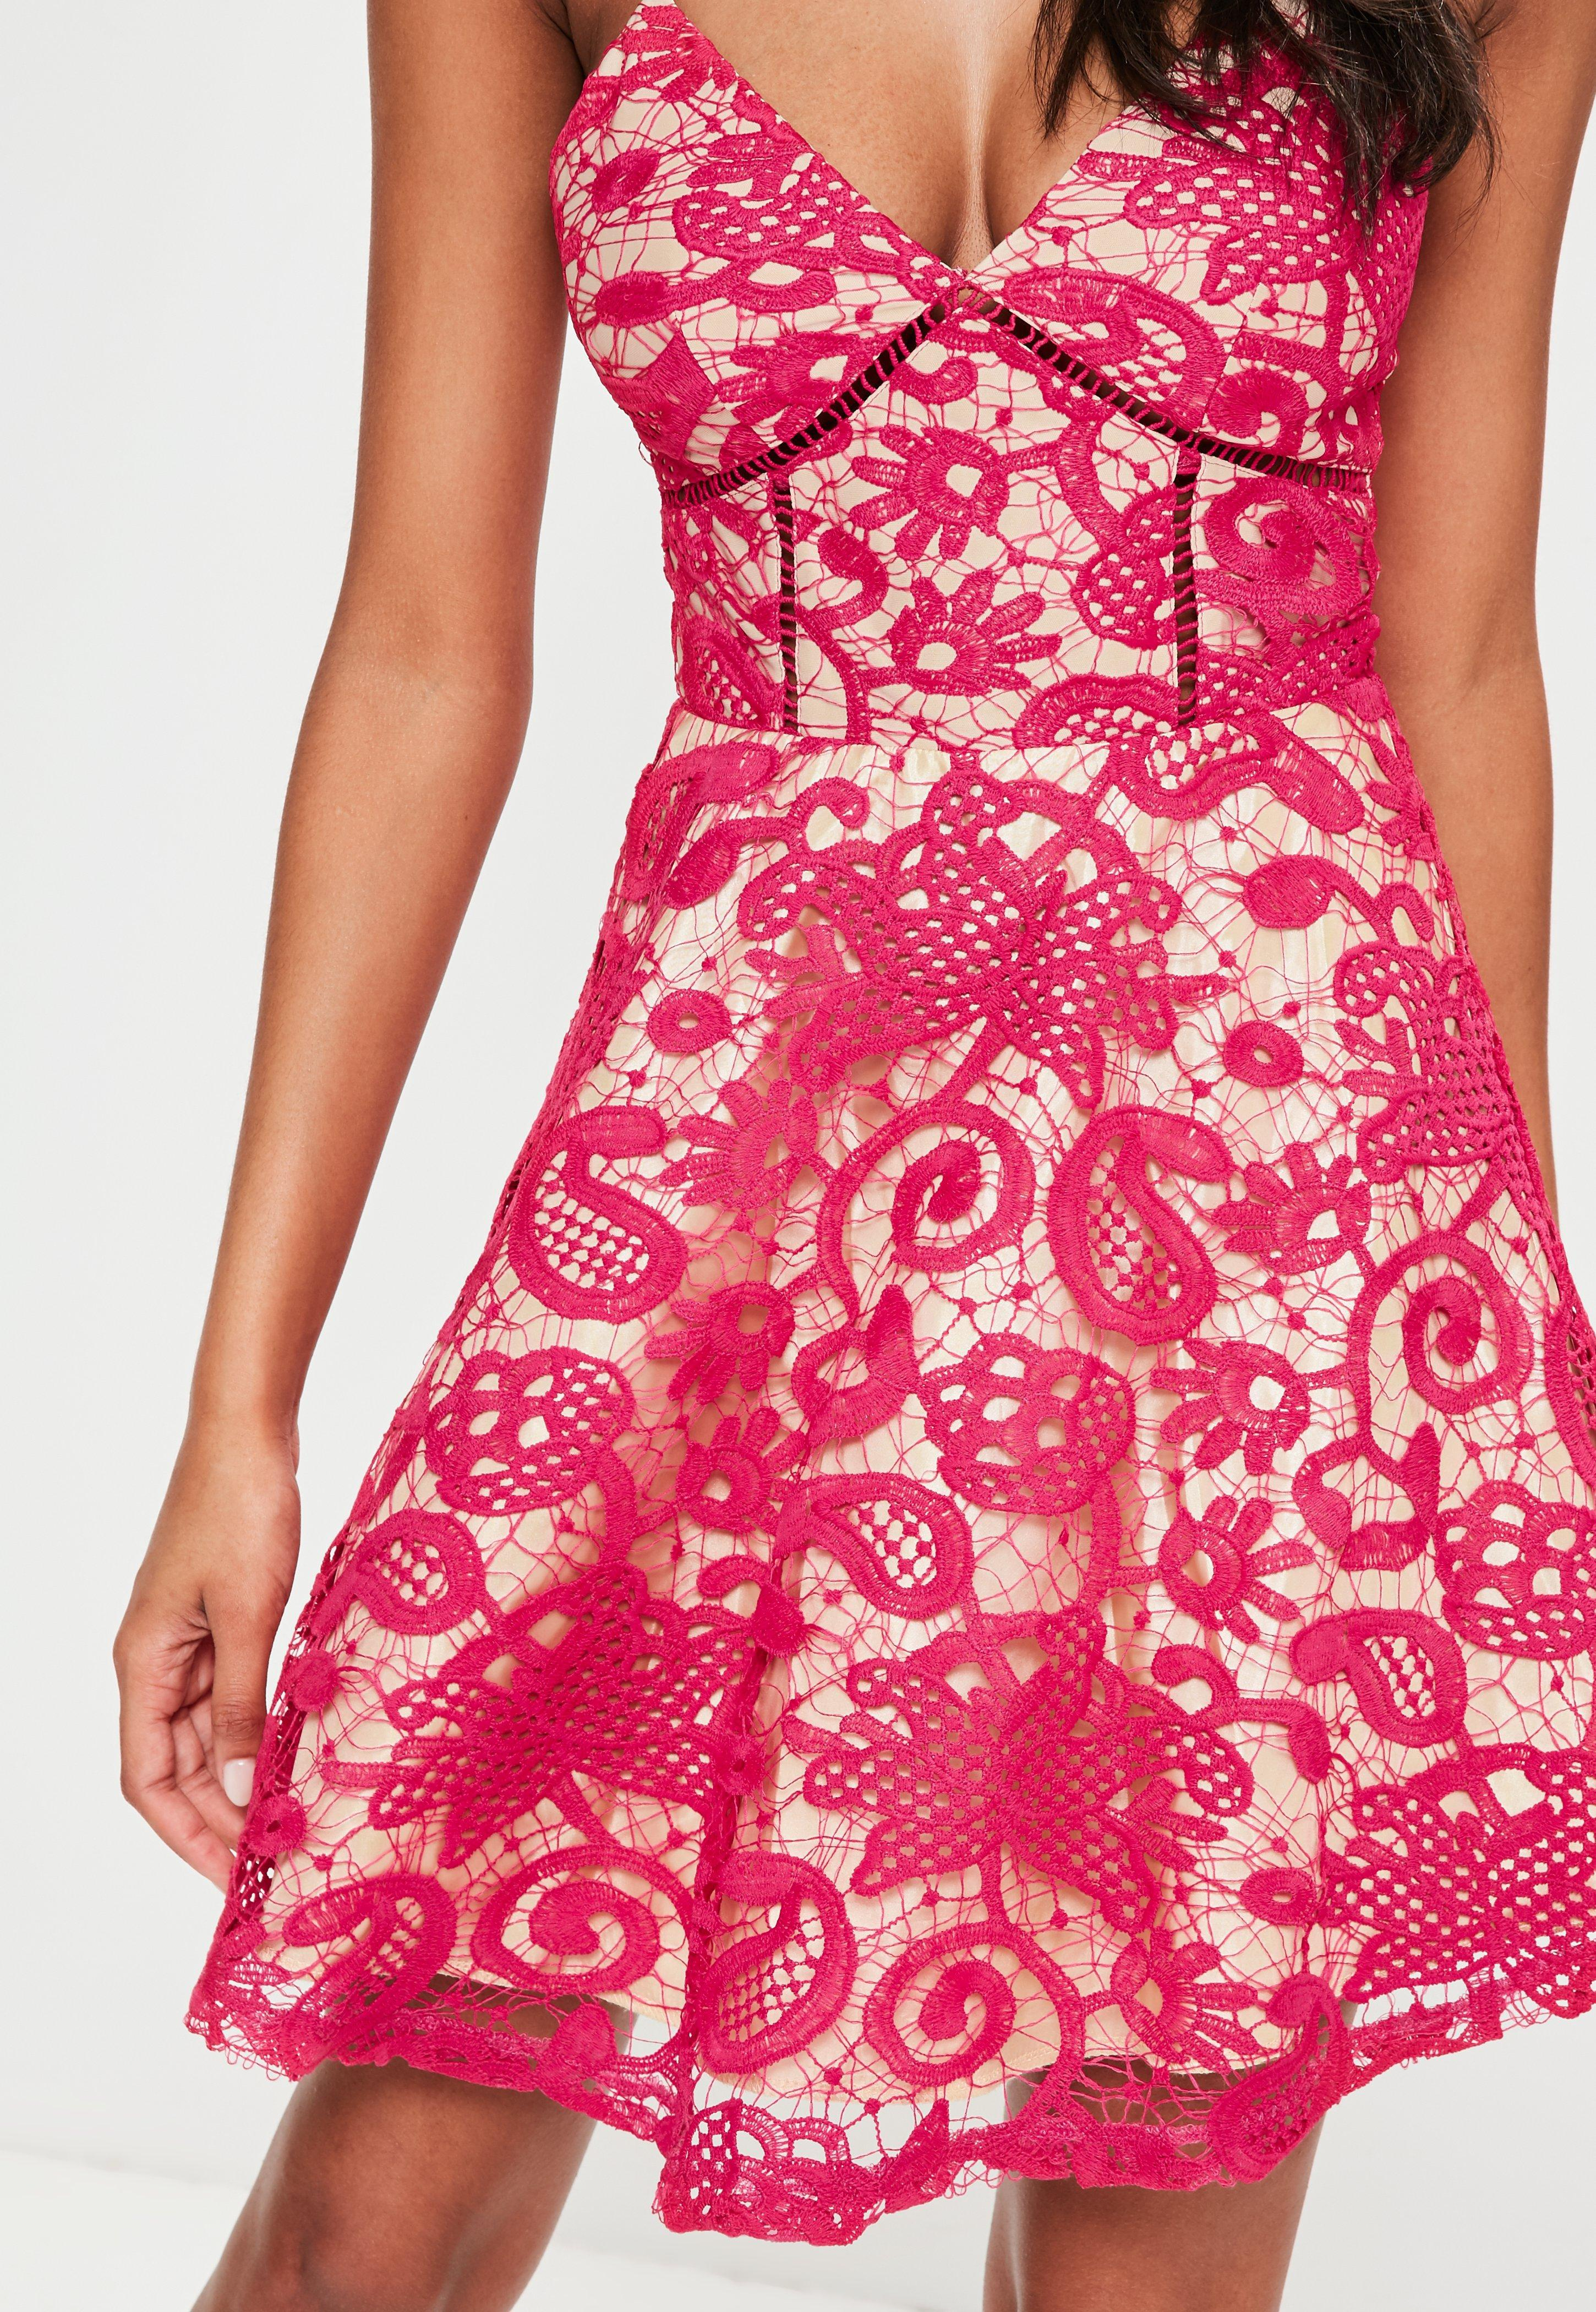 2305738b8a Lyst - Missguided Pink Strappy Lace Skater Dress in Pink